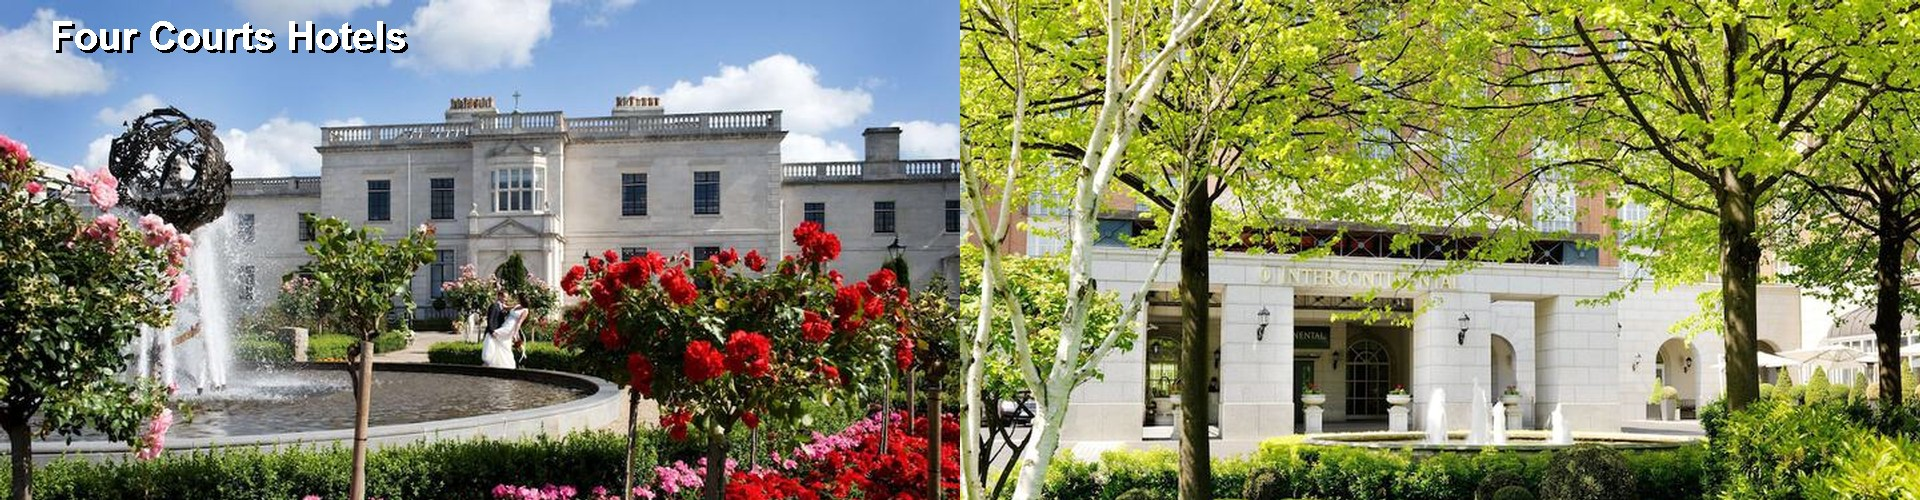 5 Best Hotels near Four Courts